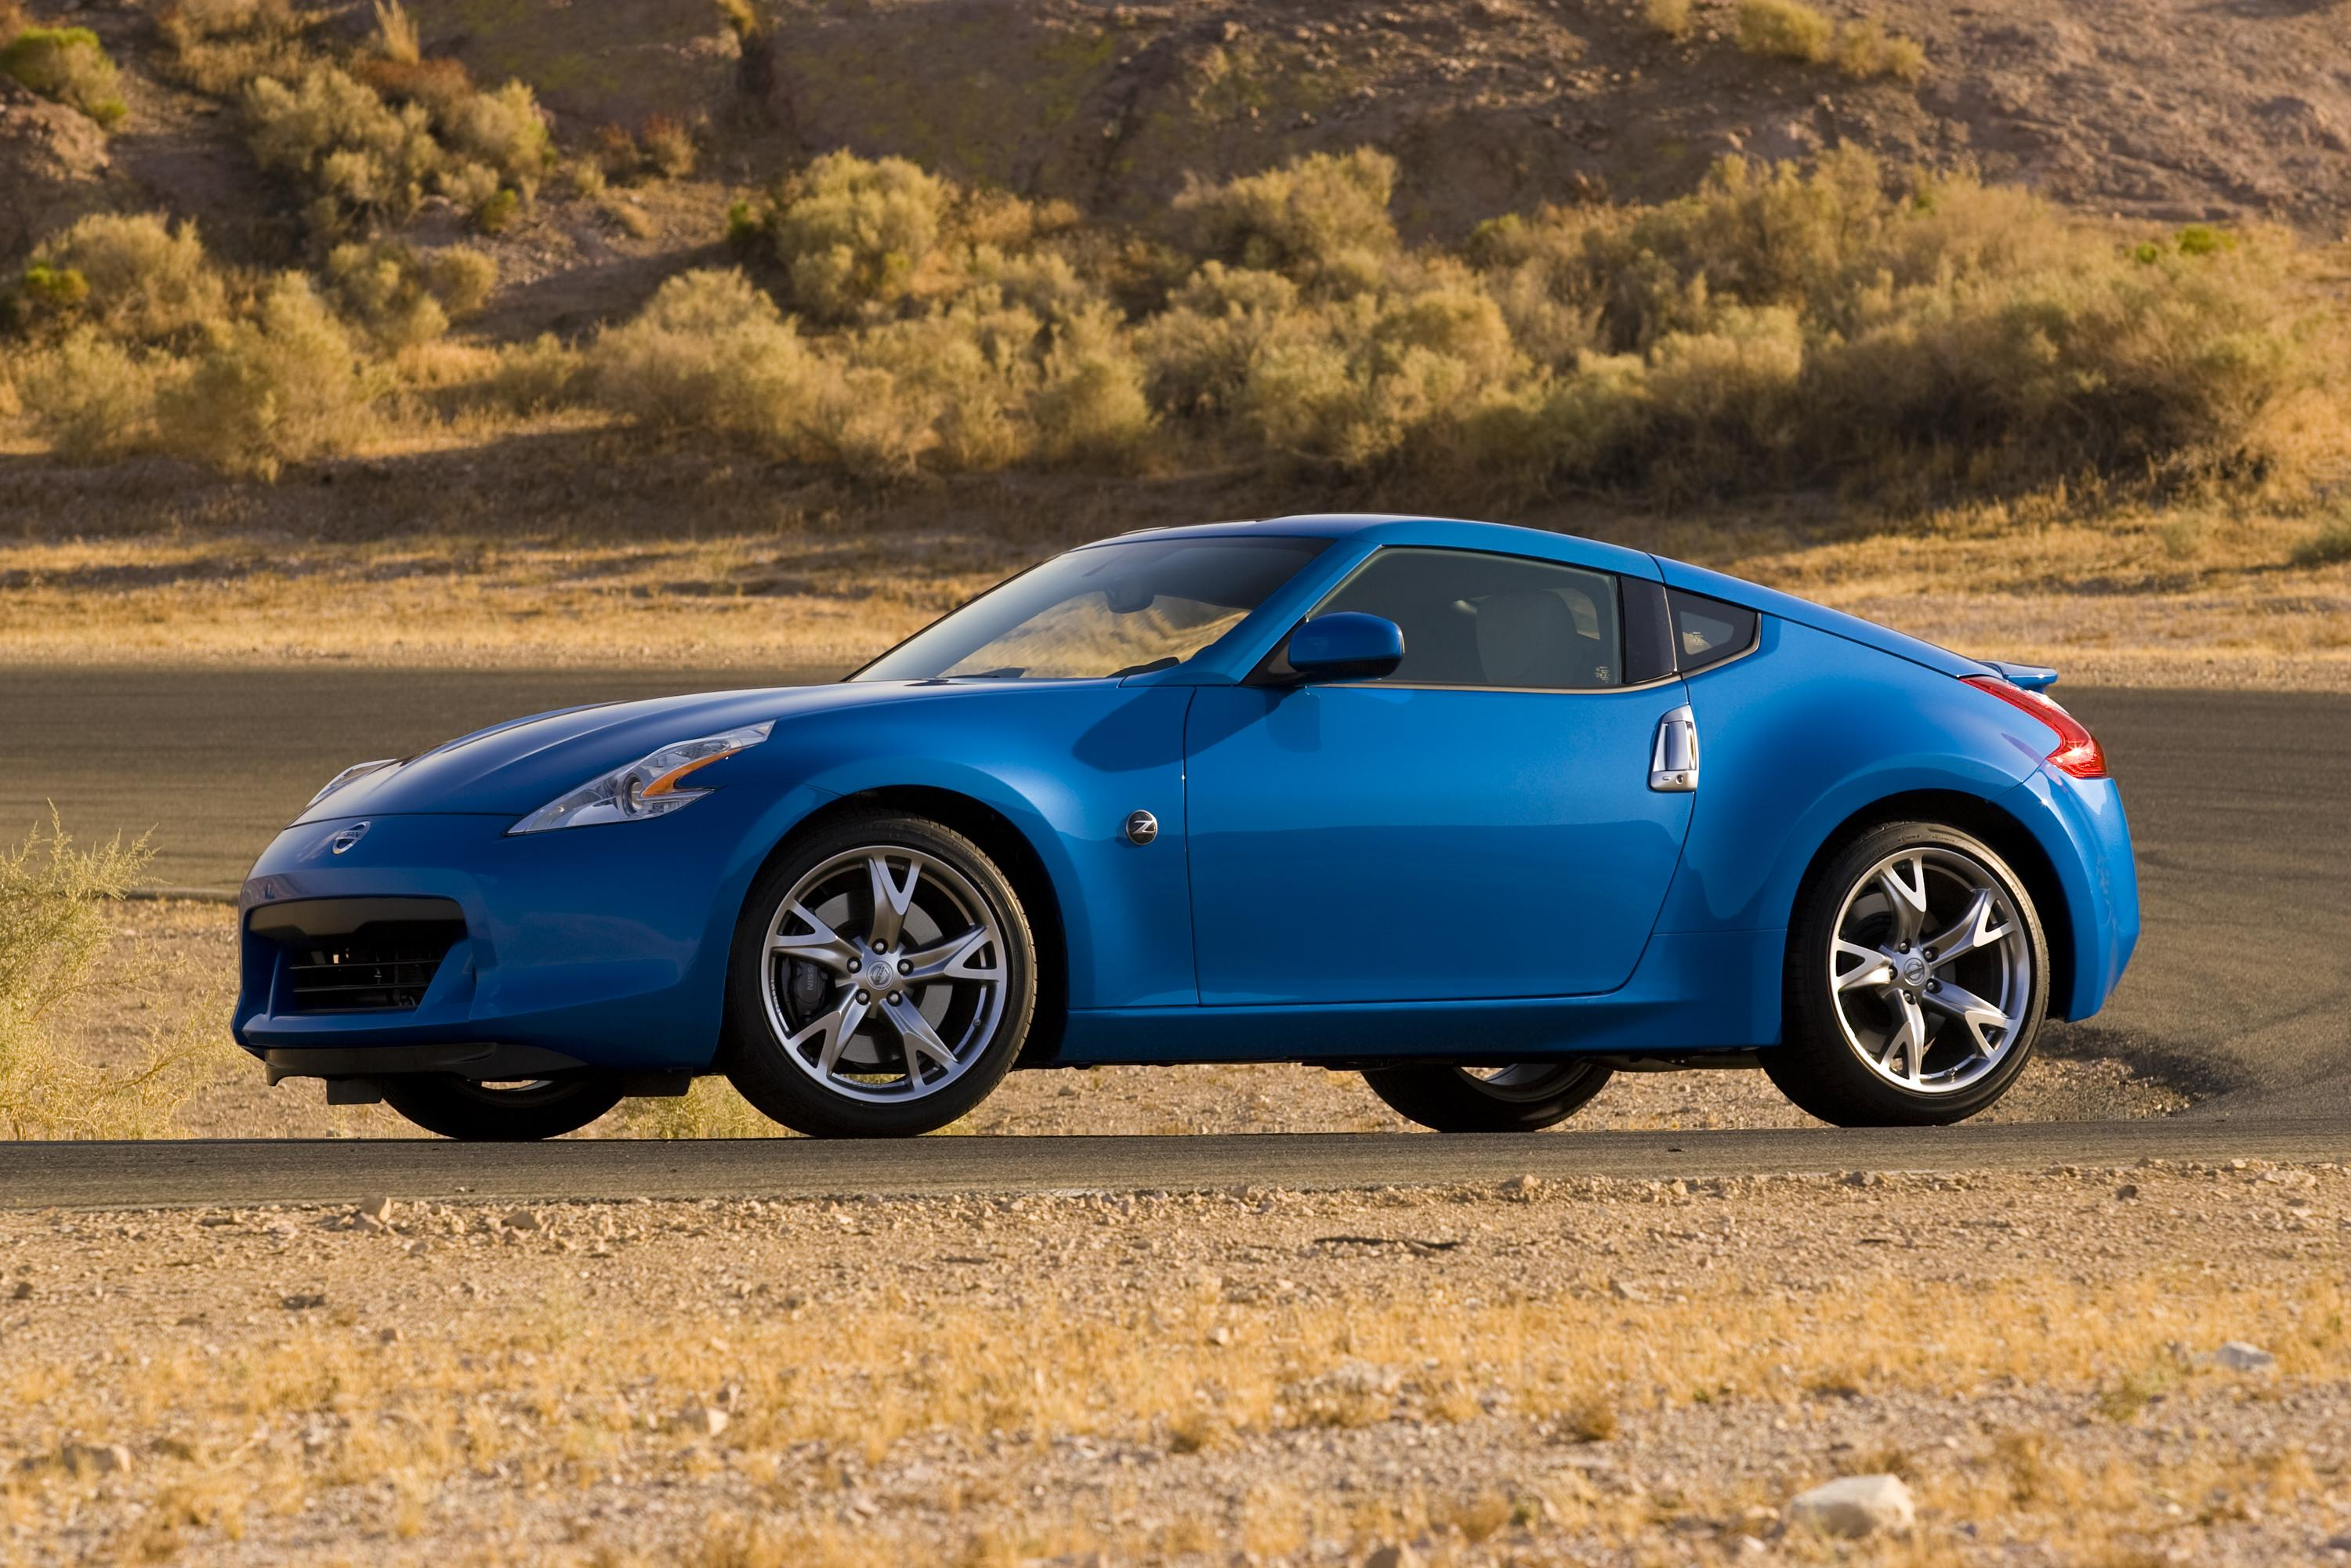 2010 Nissan 370Z Coupe | Top Speed